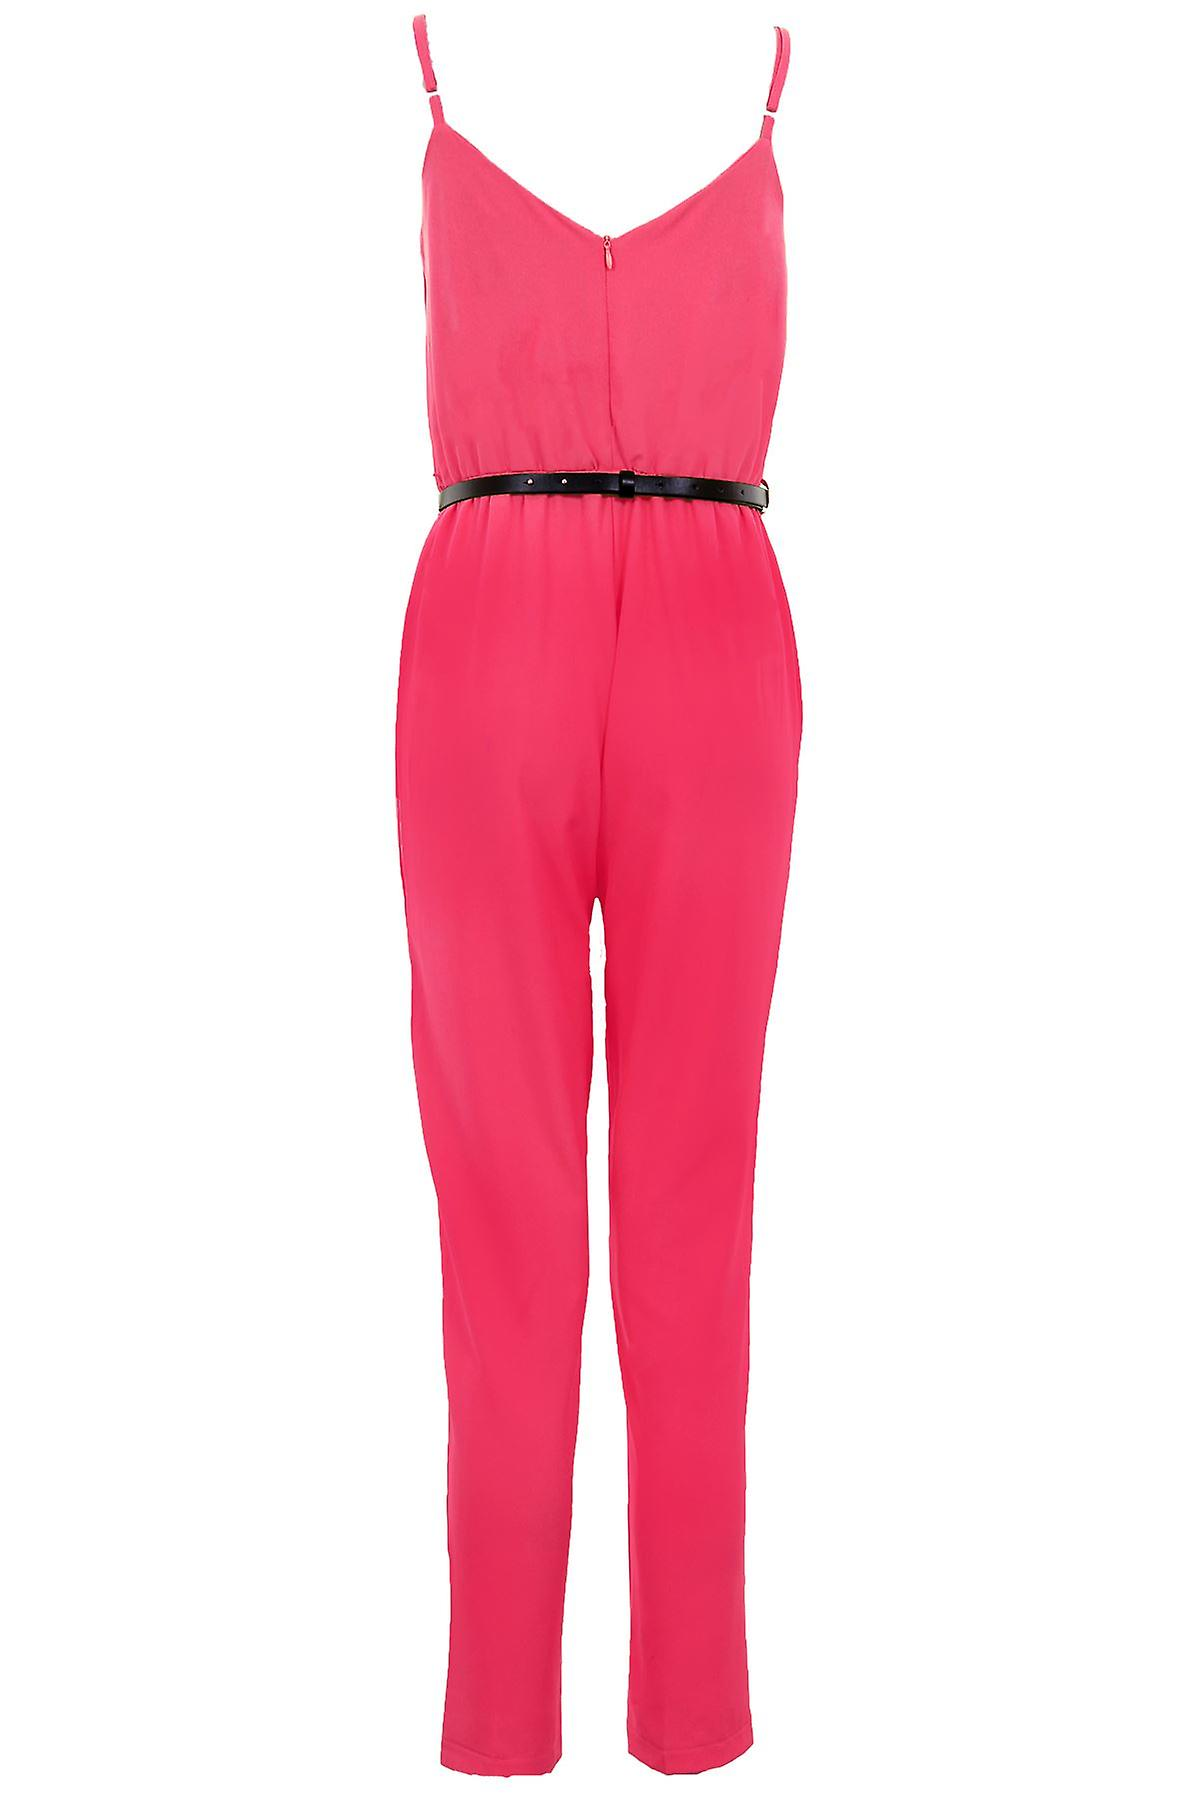 Ladies Sleeveless Cami Gold Belted Plain Women's All In One Party Crepe Jumpsuit